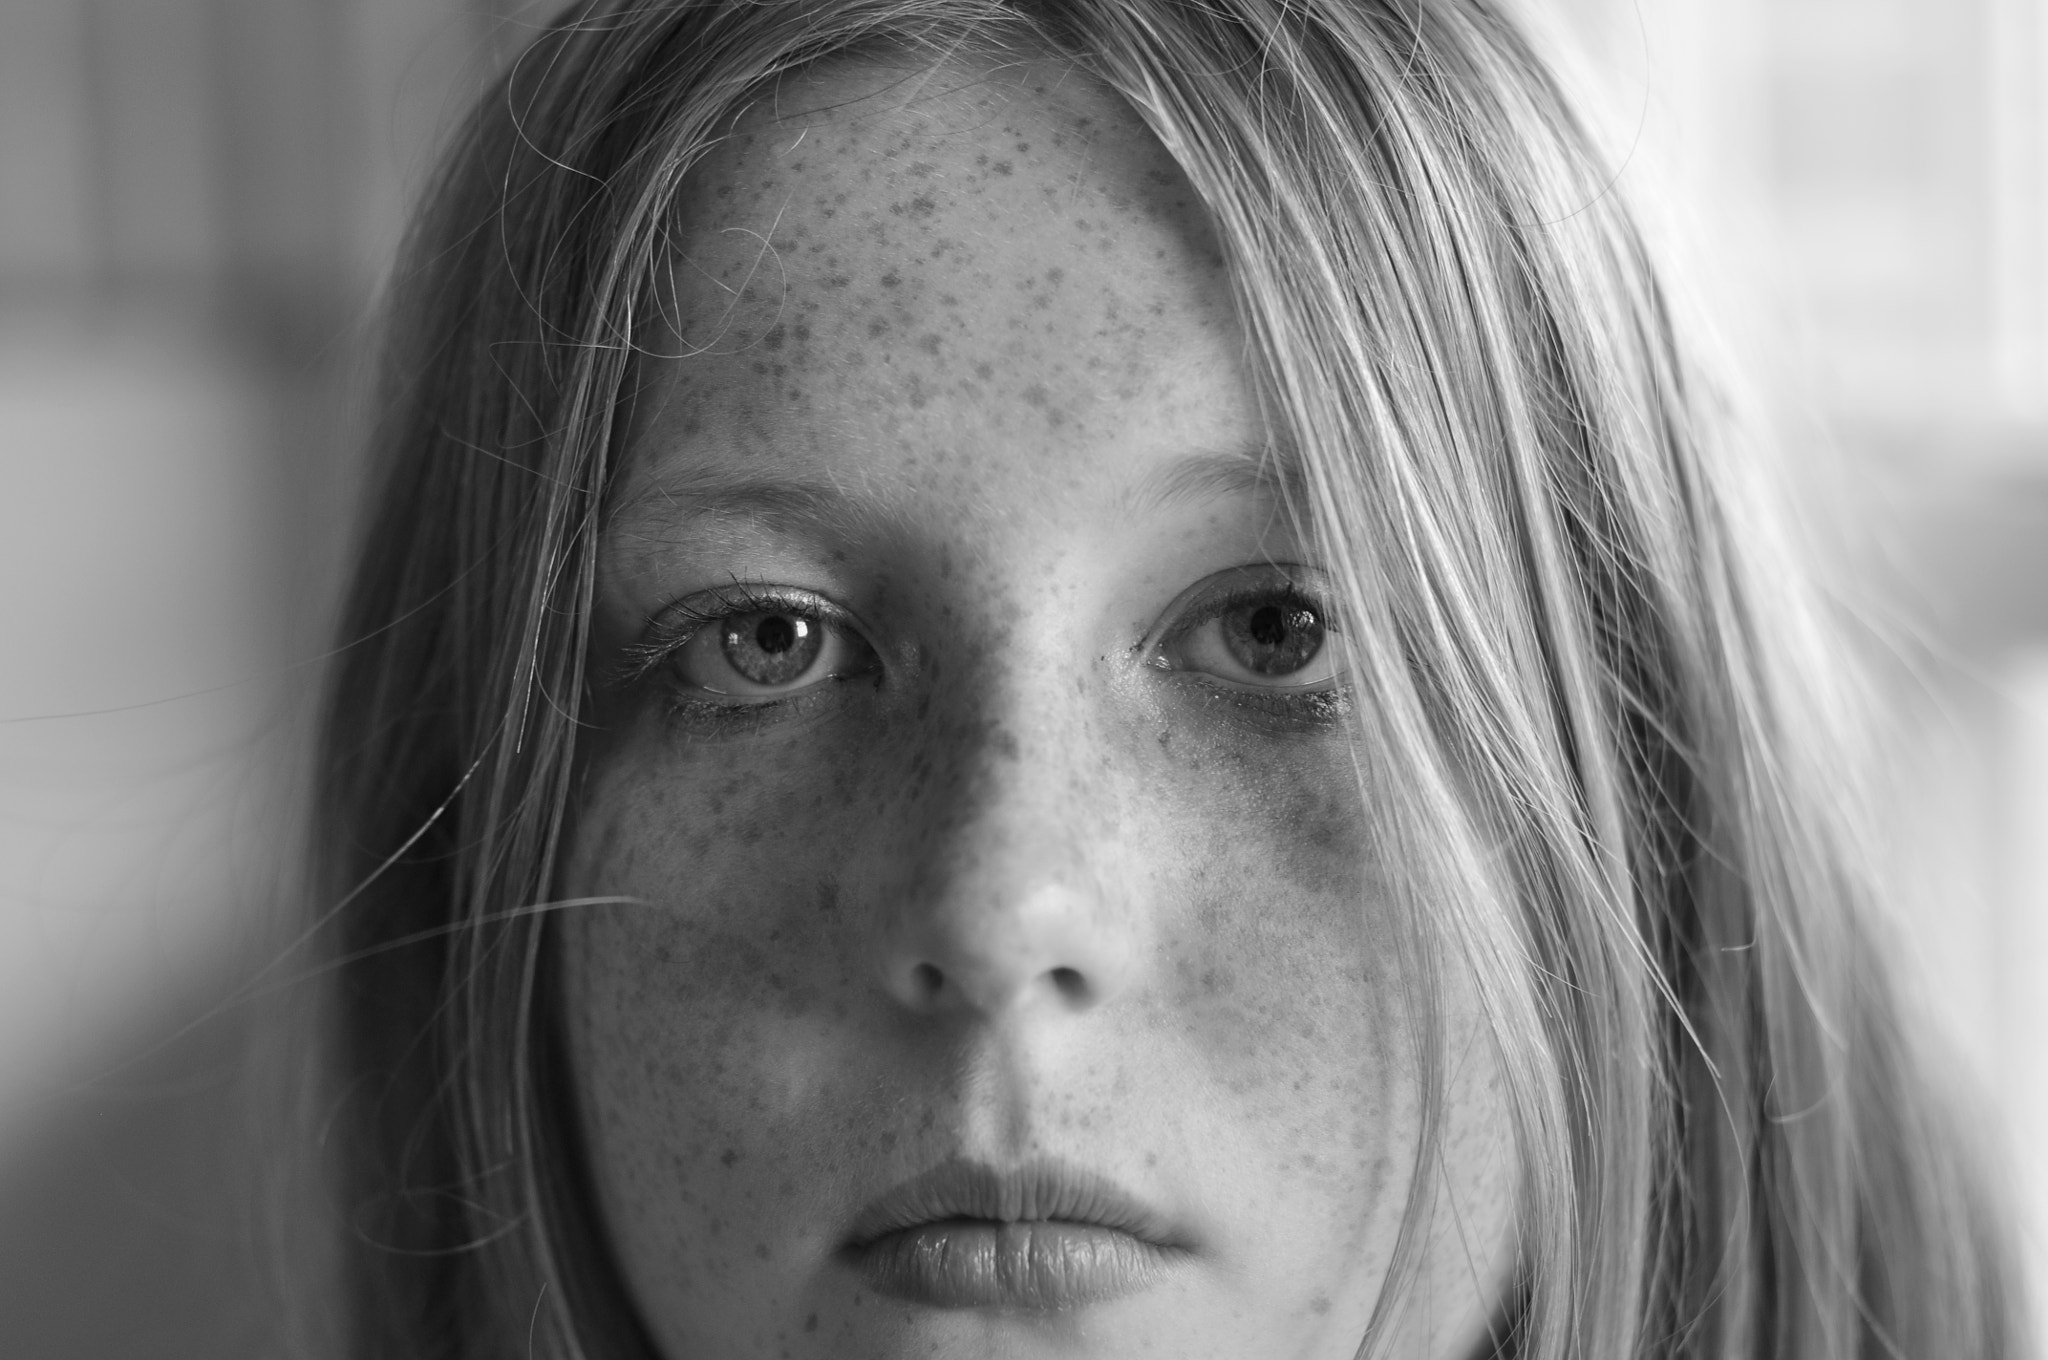 Photograph Freckles by Chris Edwards on 500px